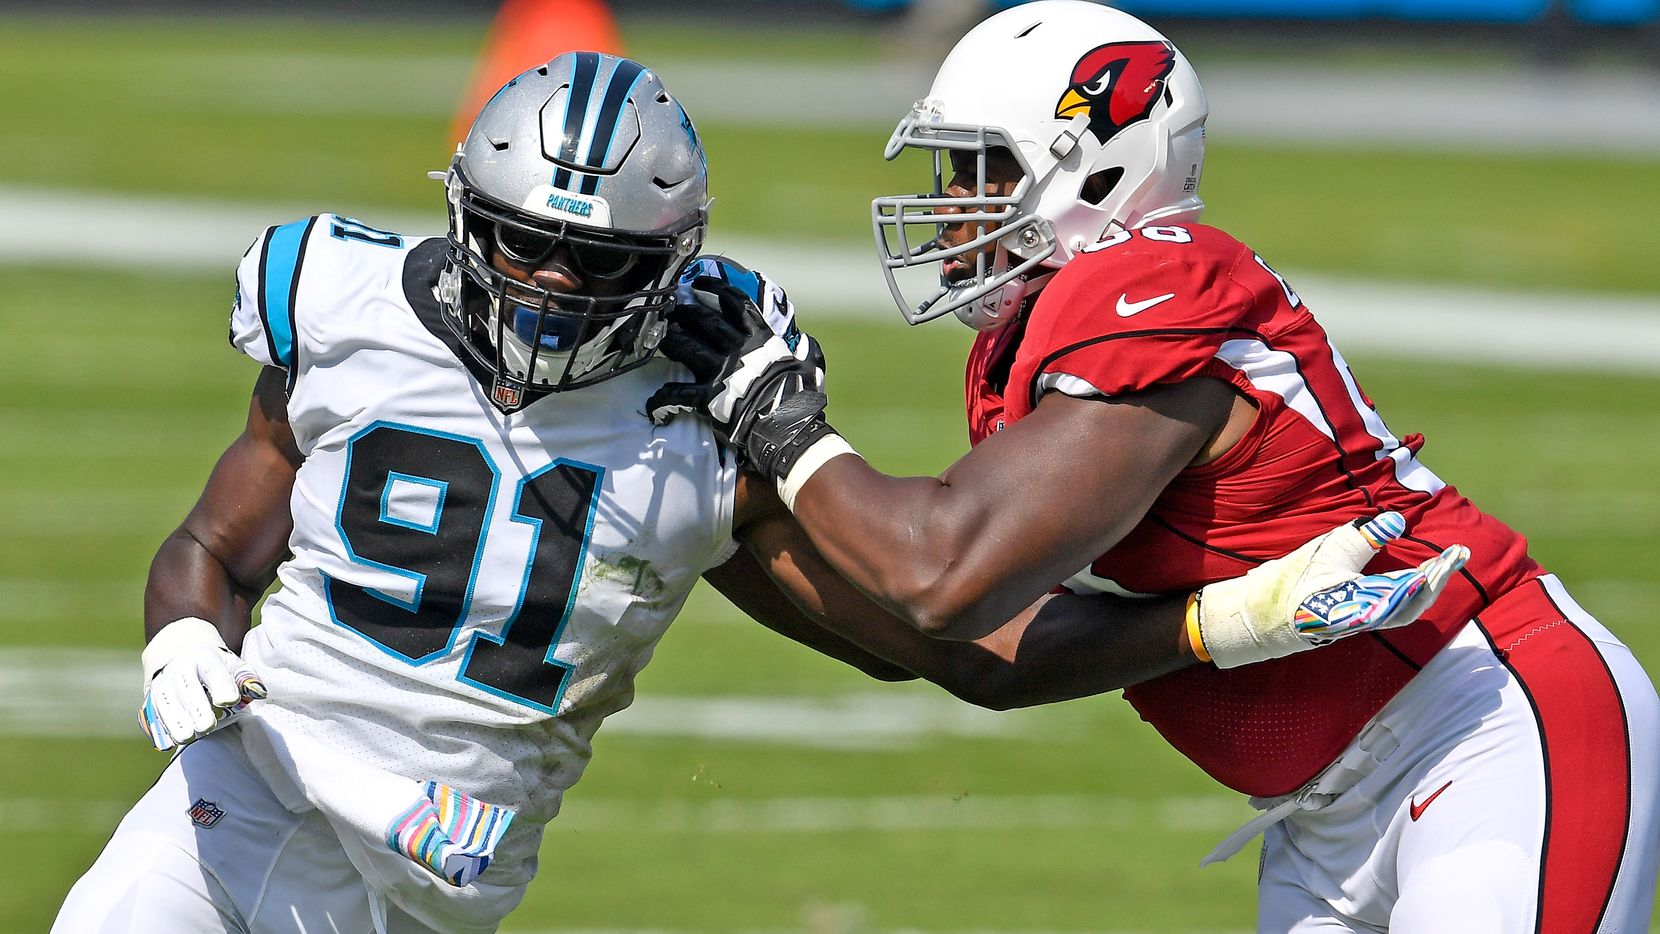 Kelvin Beachum #68 of the Arizona Cardinals blocks Stephen Weatherly #91 of the Carolina Panthers during the first quarter of their game at Bank of America Stadium on October 04, 2020 in Charlotte, North Carolina.